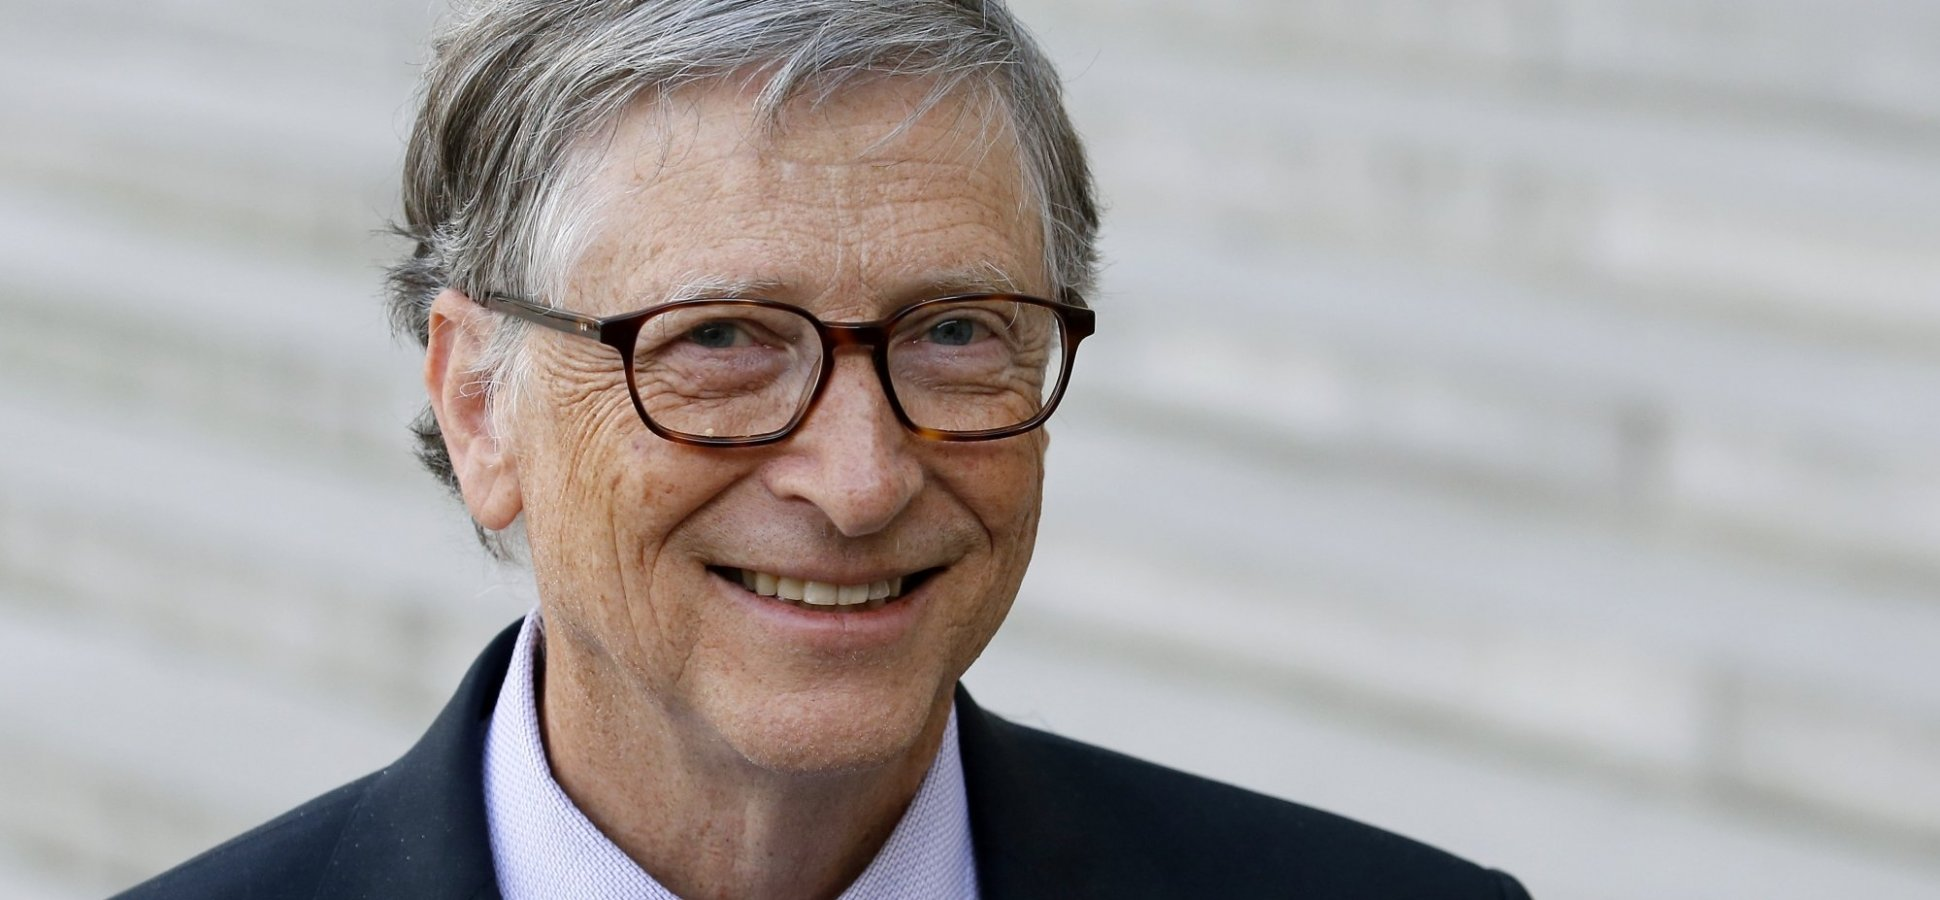 Bill Gates Says That These Are 5 of His Favorite TED Talks (You Might Be Surprised)